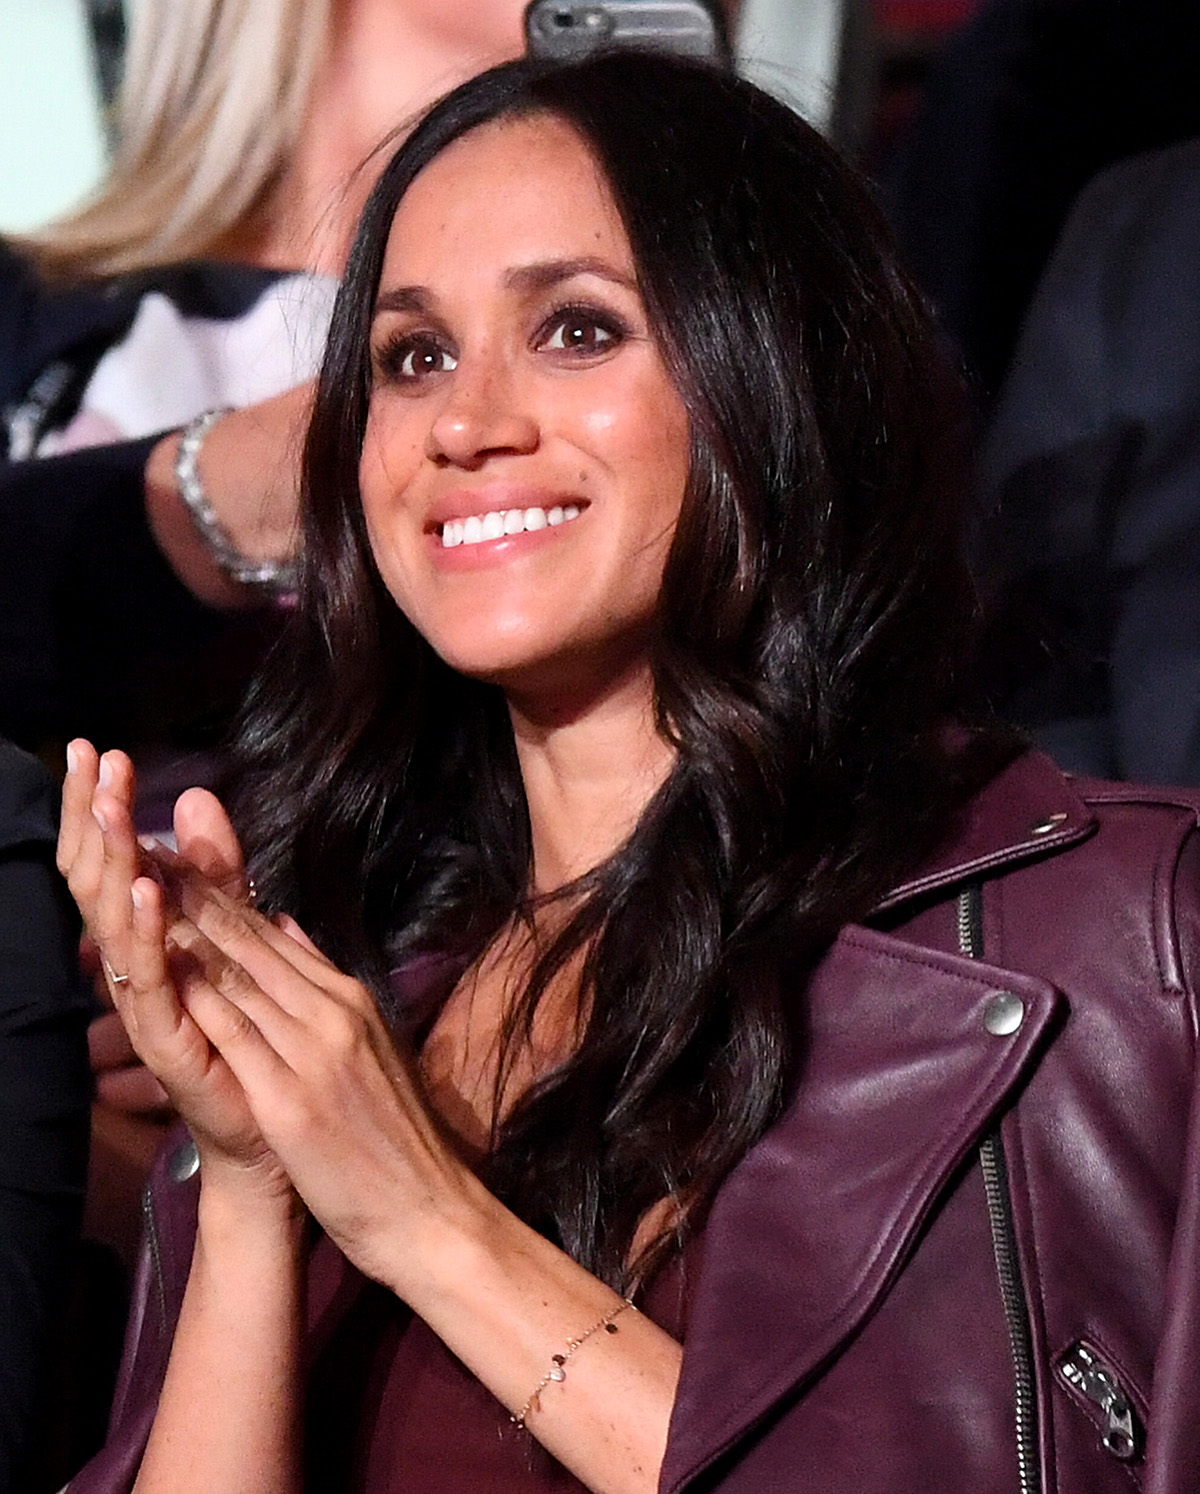 See All the Photos from Meghan Markle's First Public Outing with Prince Harry